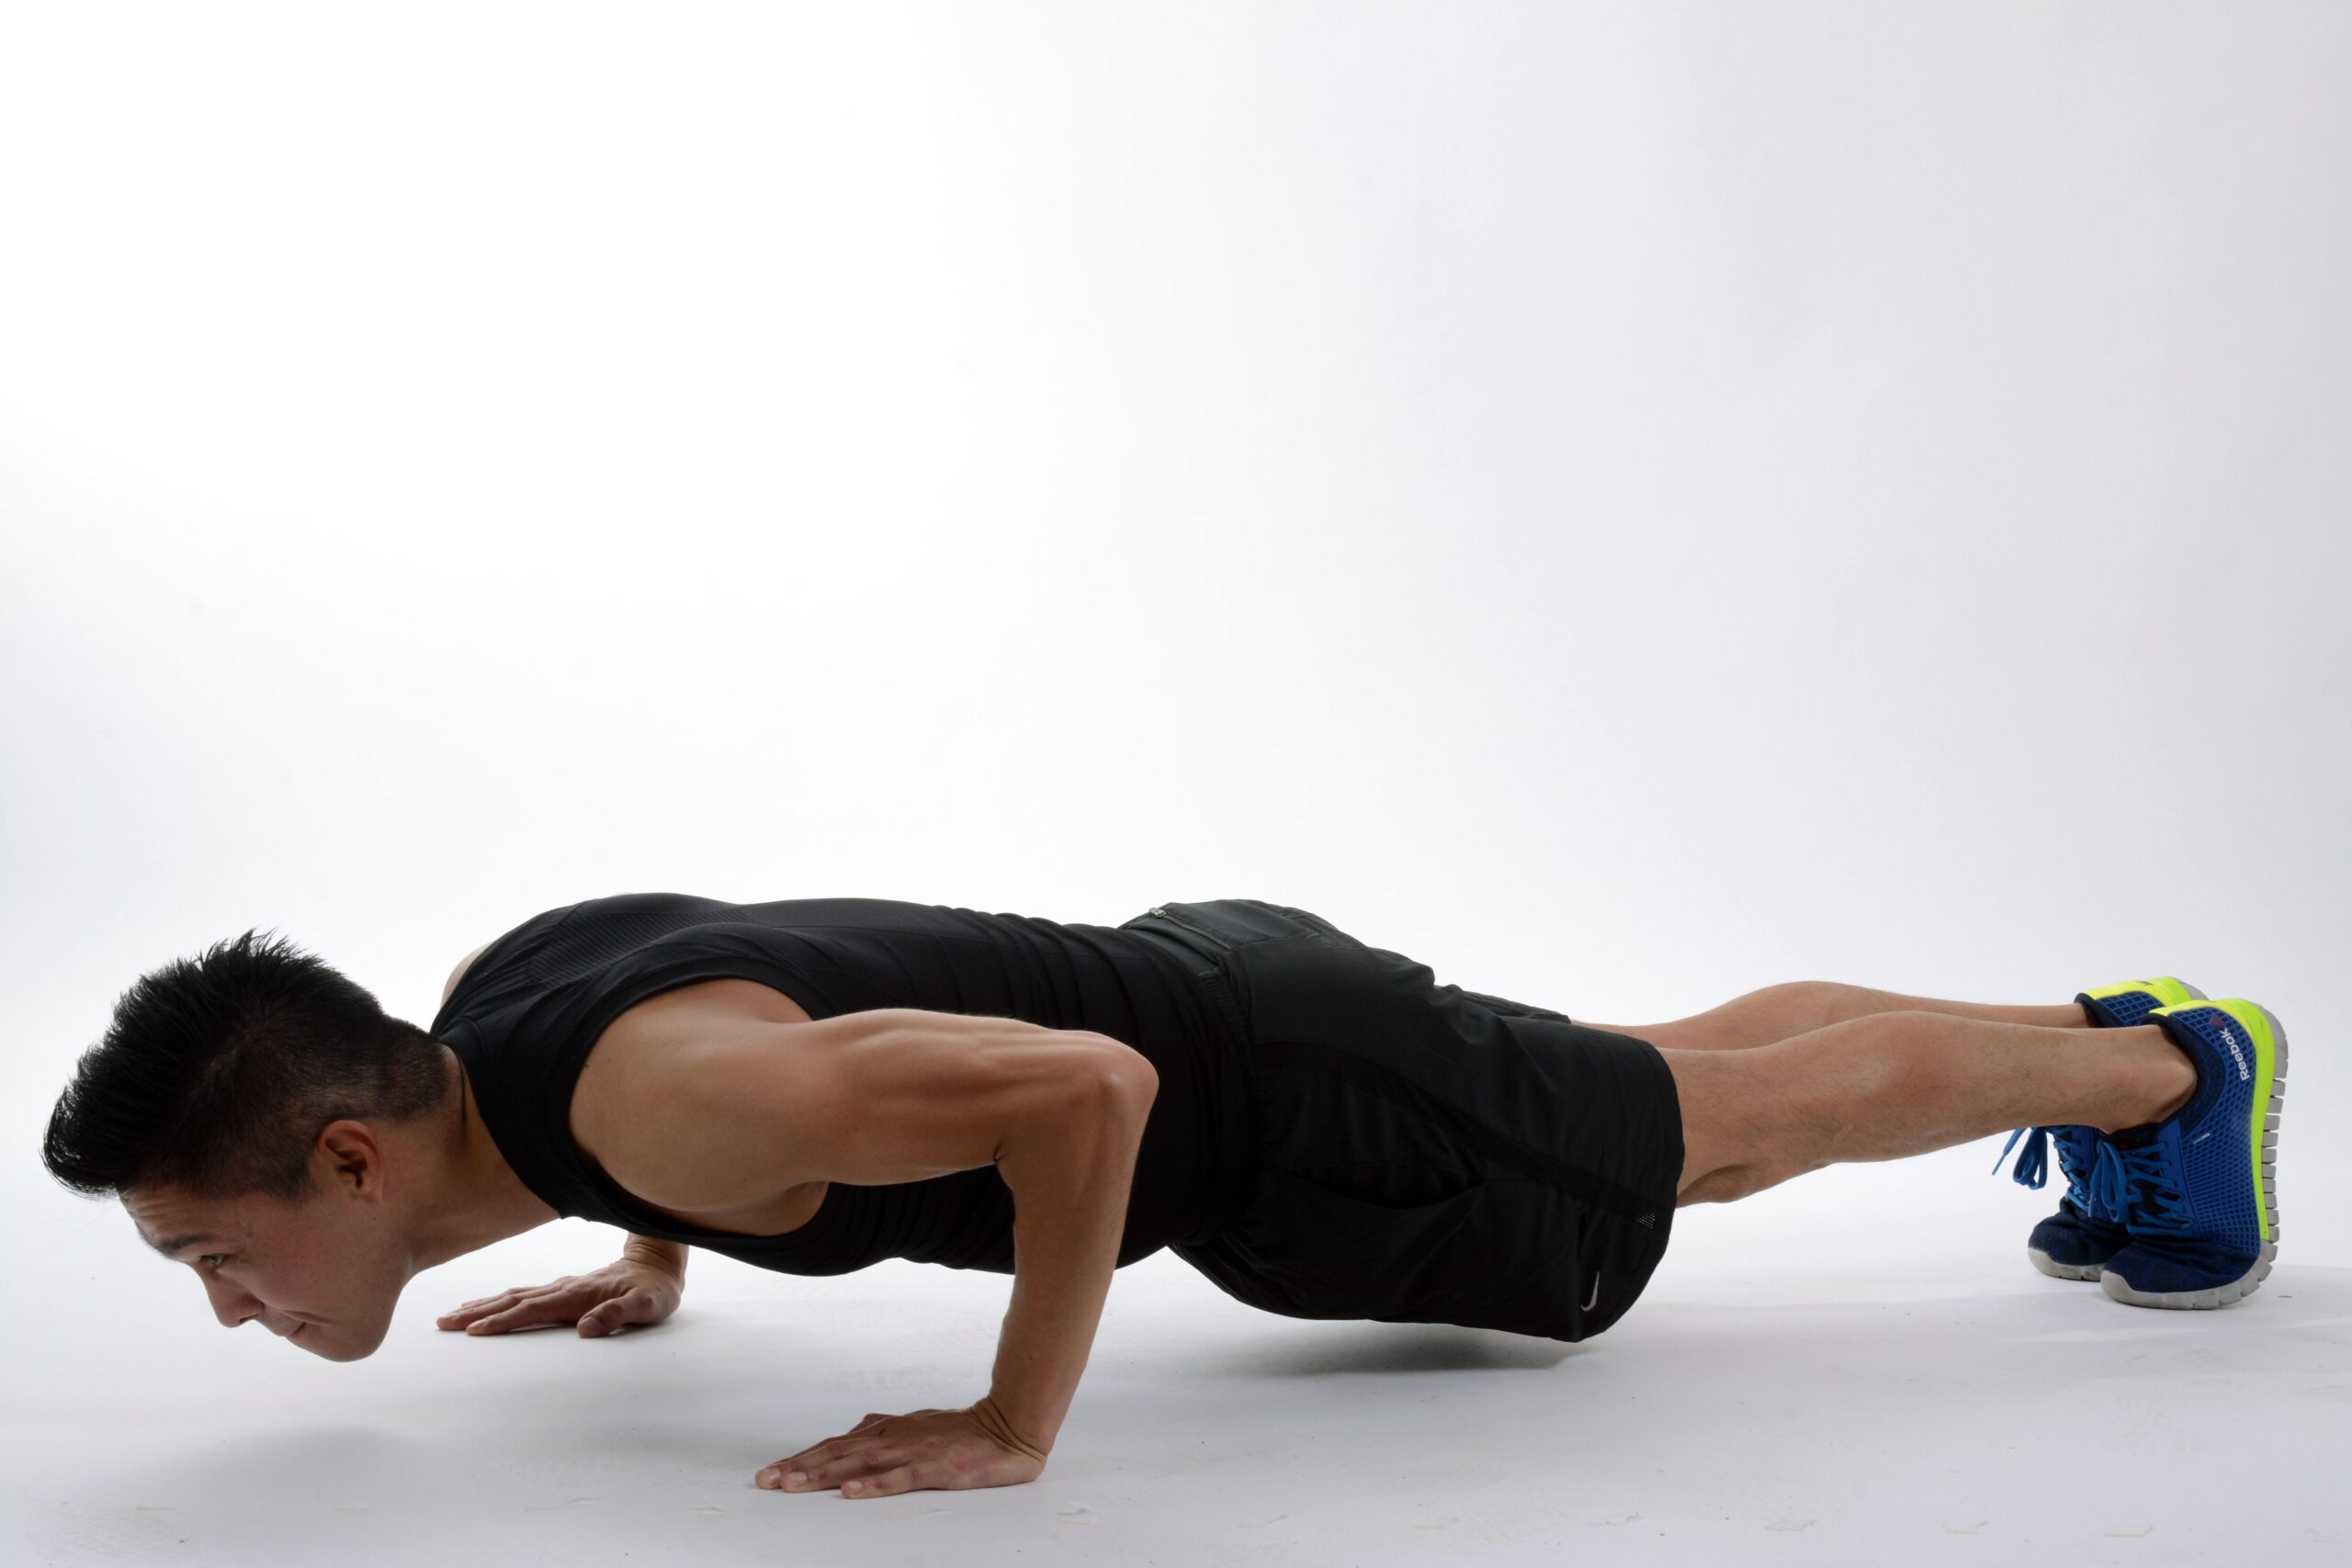 Picture of a man in the bottom position of a push-up